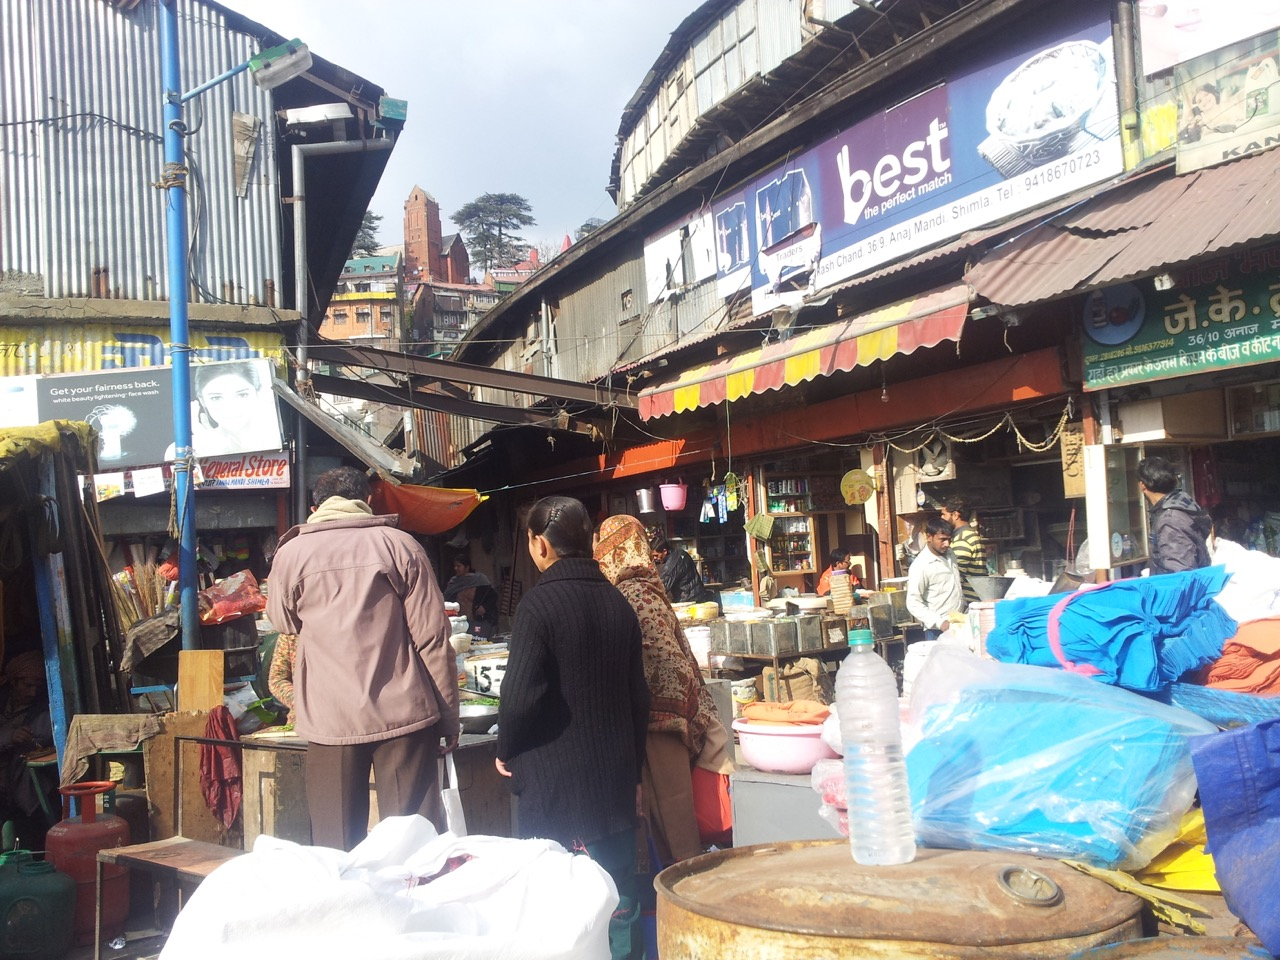 The anaj mandi market specialises in groceries.